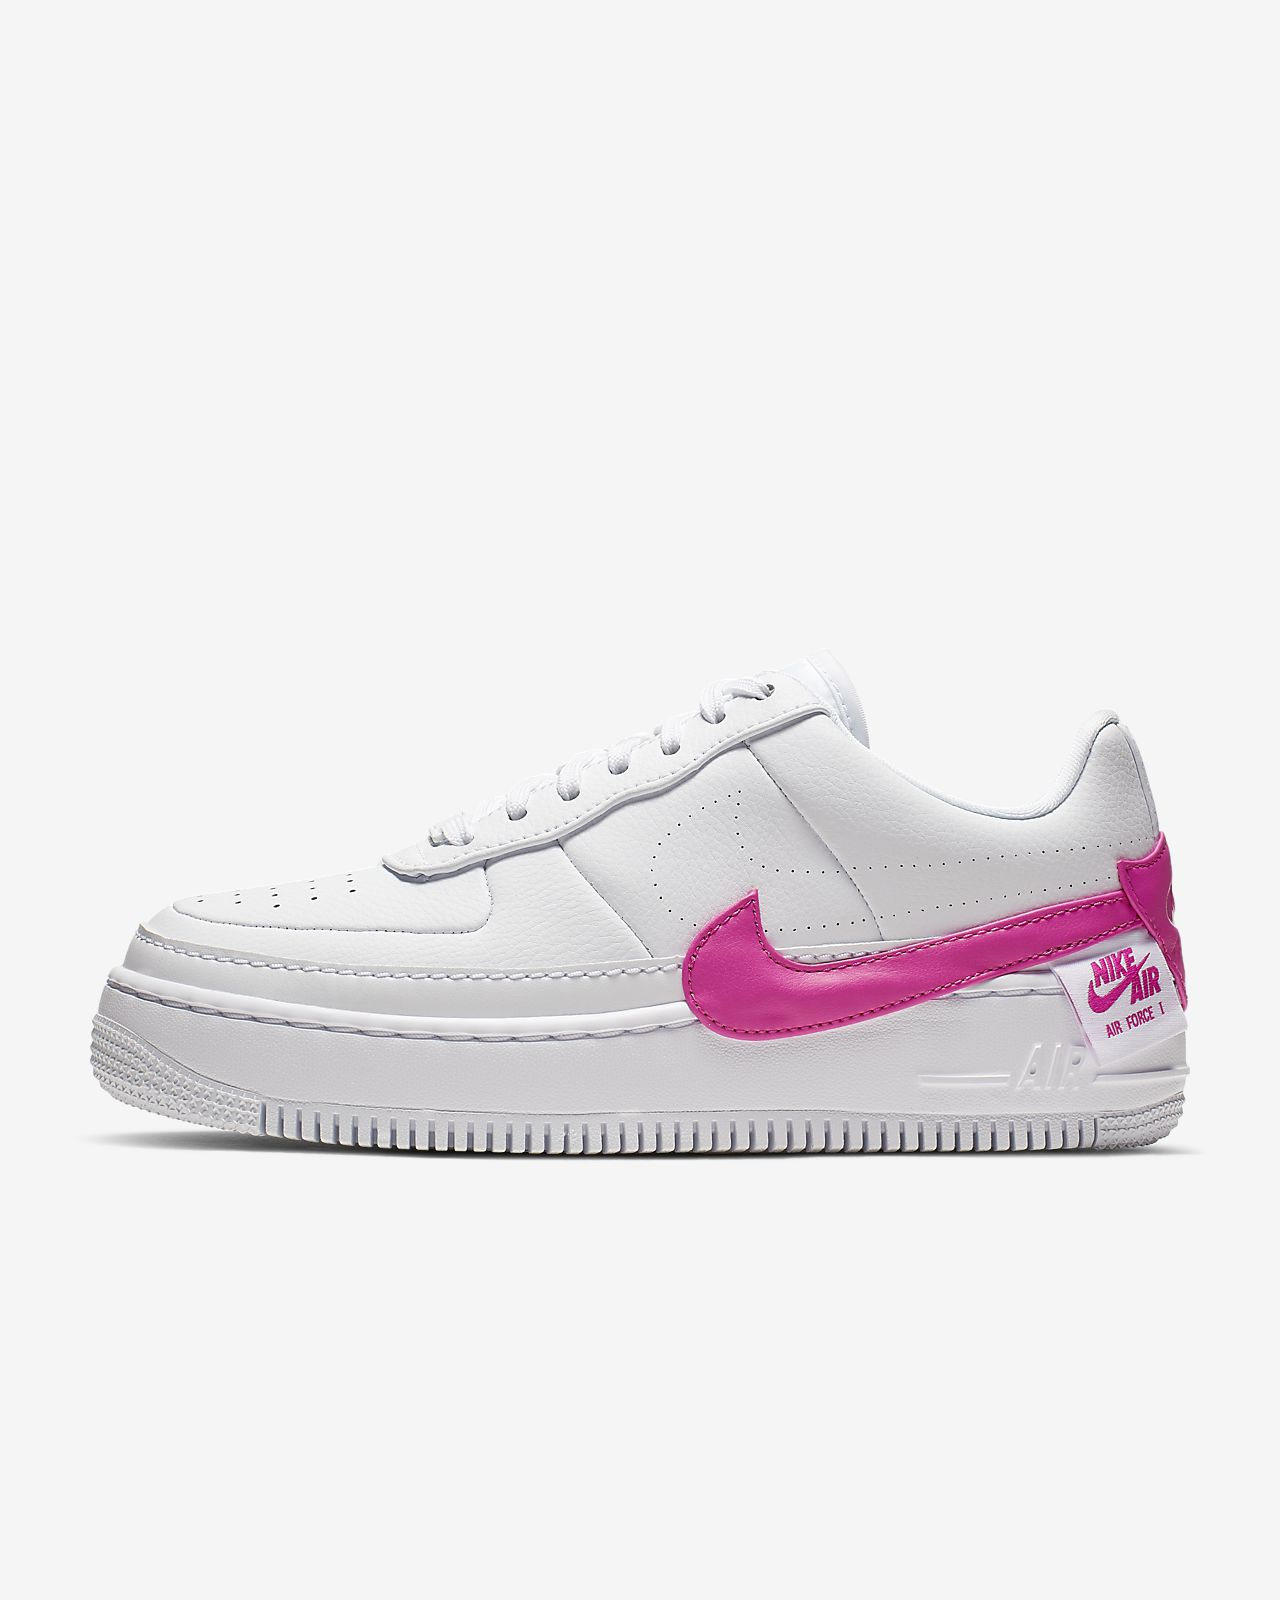 0a62694f2 Low Resolution Sapatilhas Nike Air Force 1 Jester XX Sapatilhas Nike Air  Force 1 Jester XX